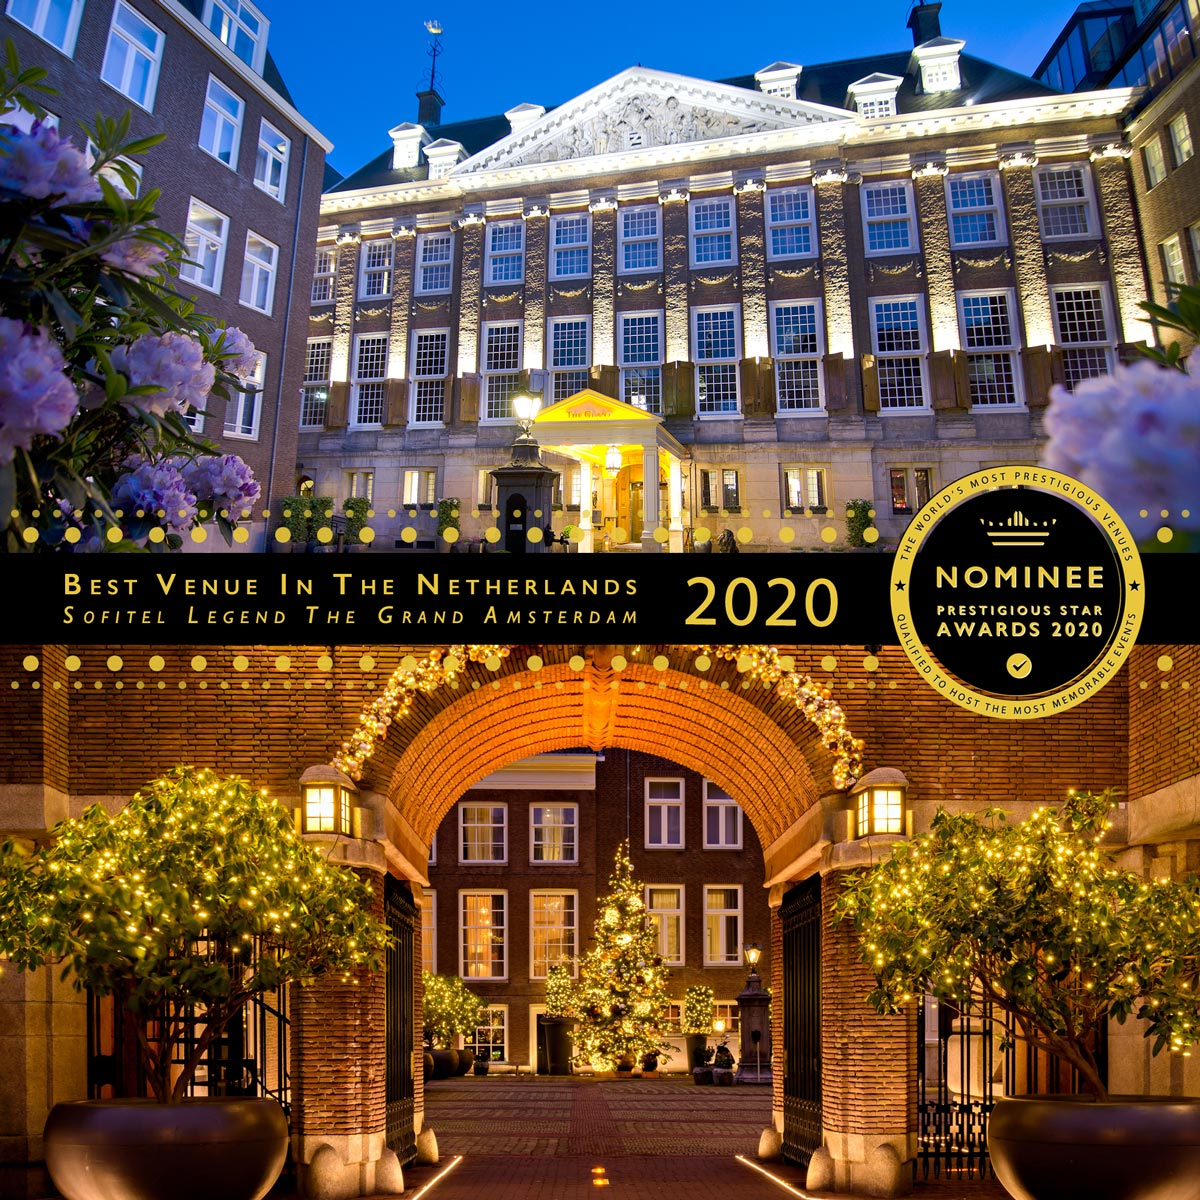 The Courtyard at Sofitel Legend The Grand Amsterdam